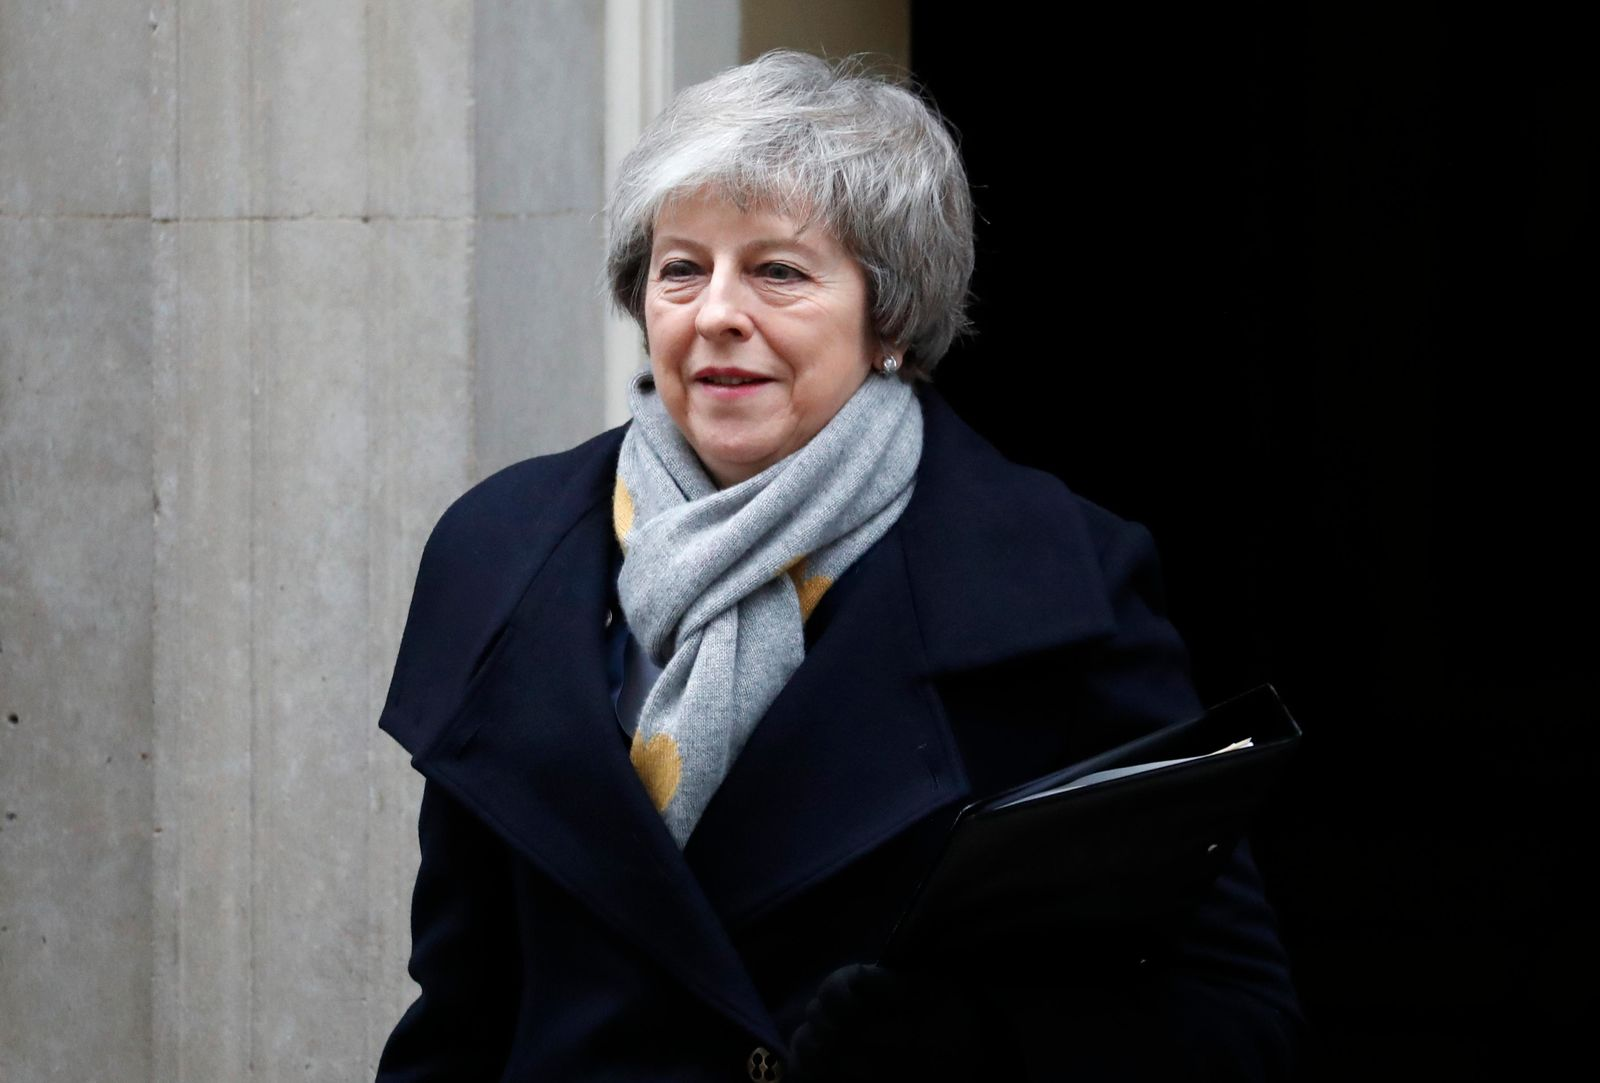 Britain's Prime Minister Theresa May leaves a cabinet meeting at Downing Street in London, Tuesday, Jan. 15. (AP Photo/Frank Augstein)